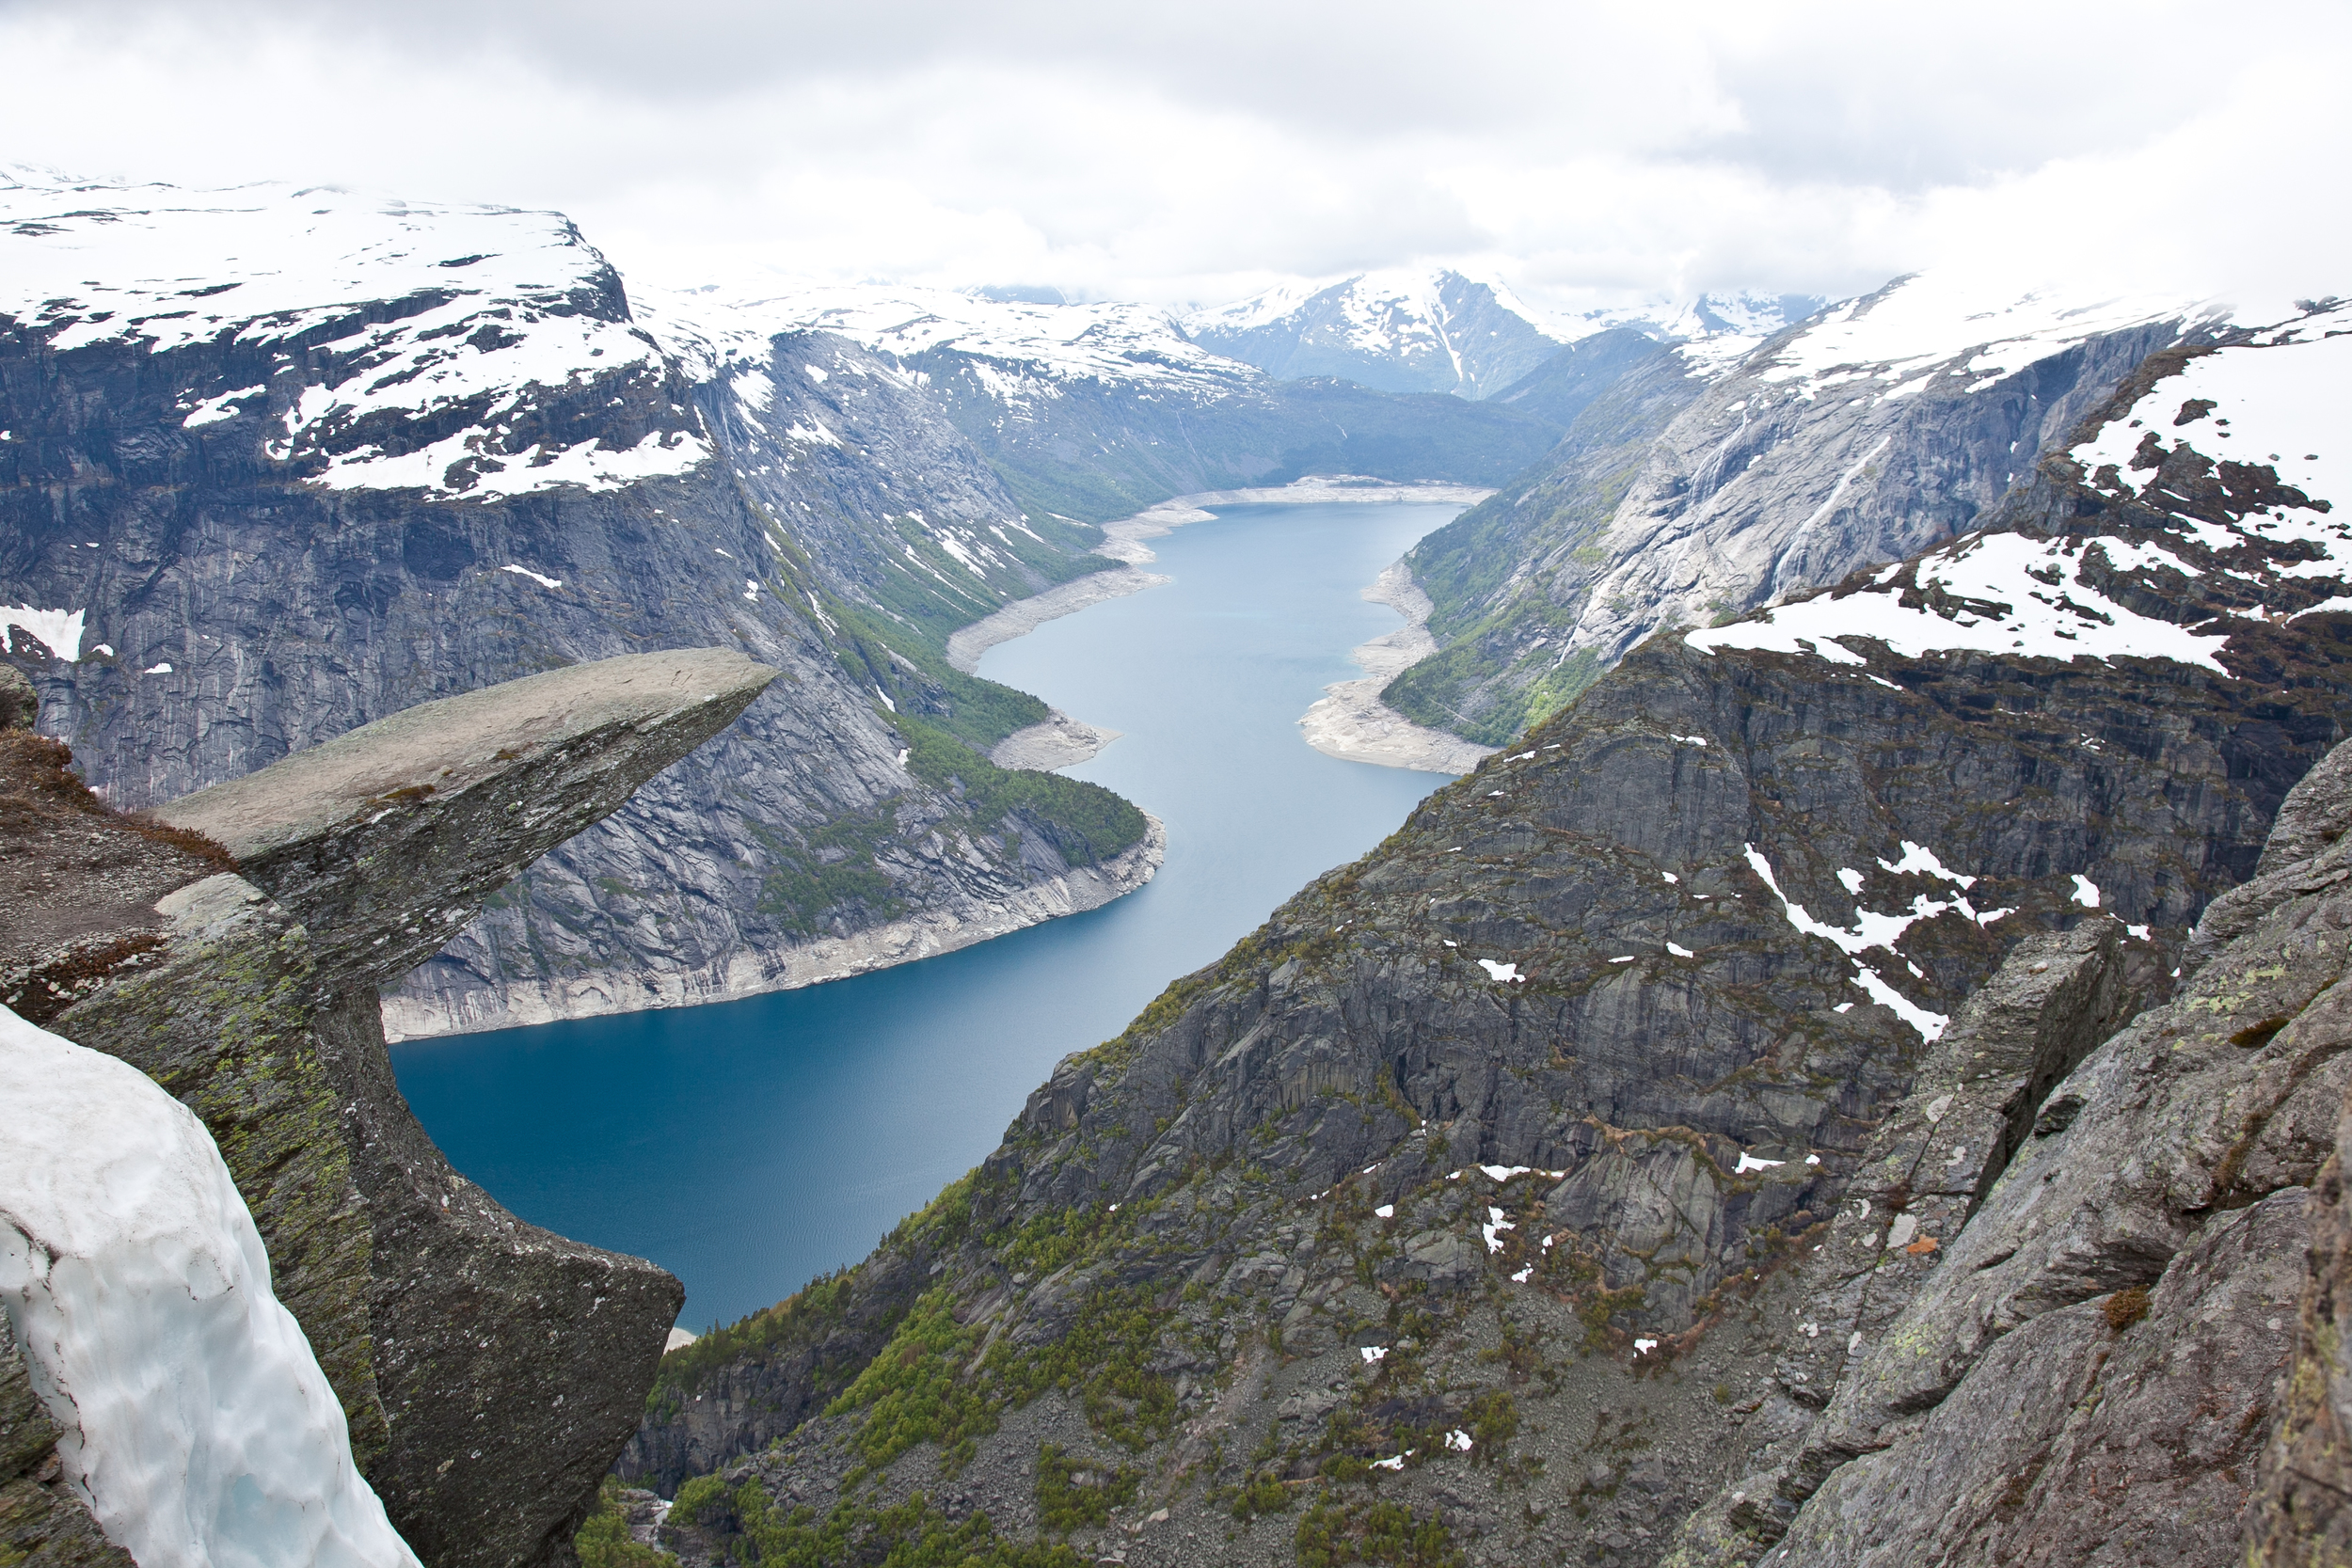 IMG_3761-trolltunga-norway-hiking-trisa-taro.jpg